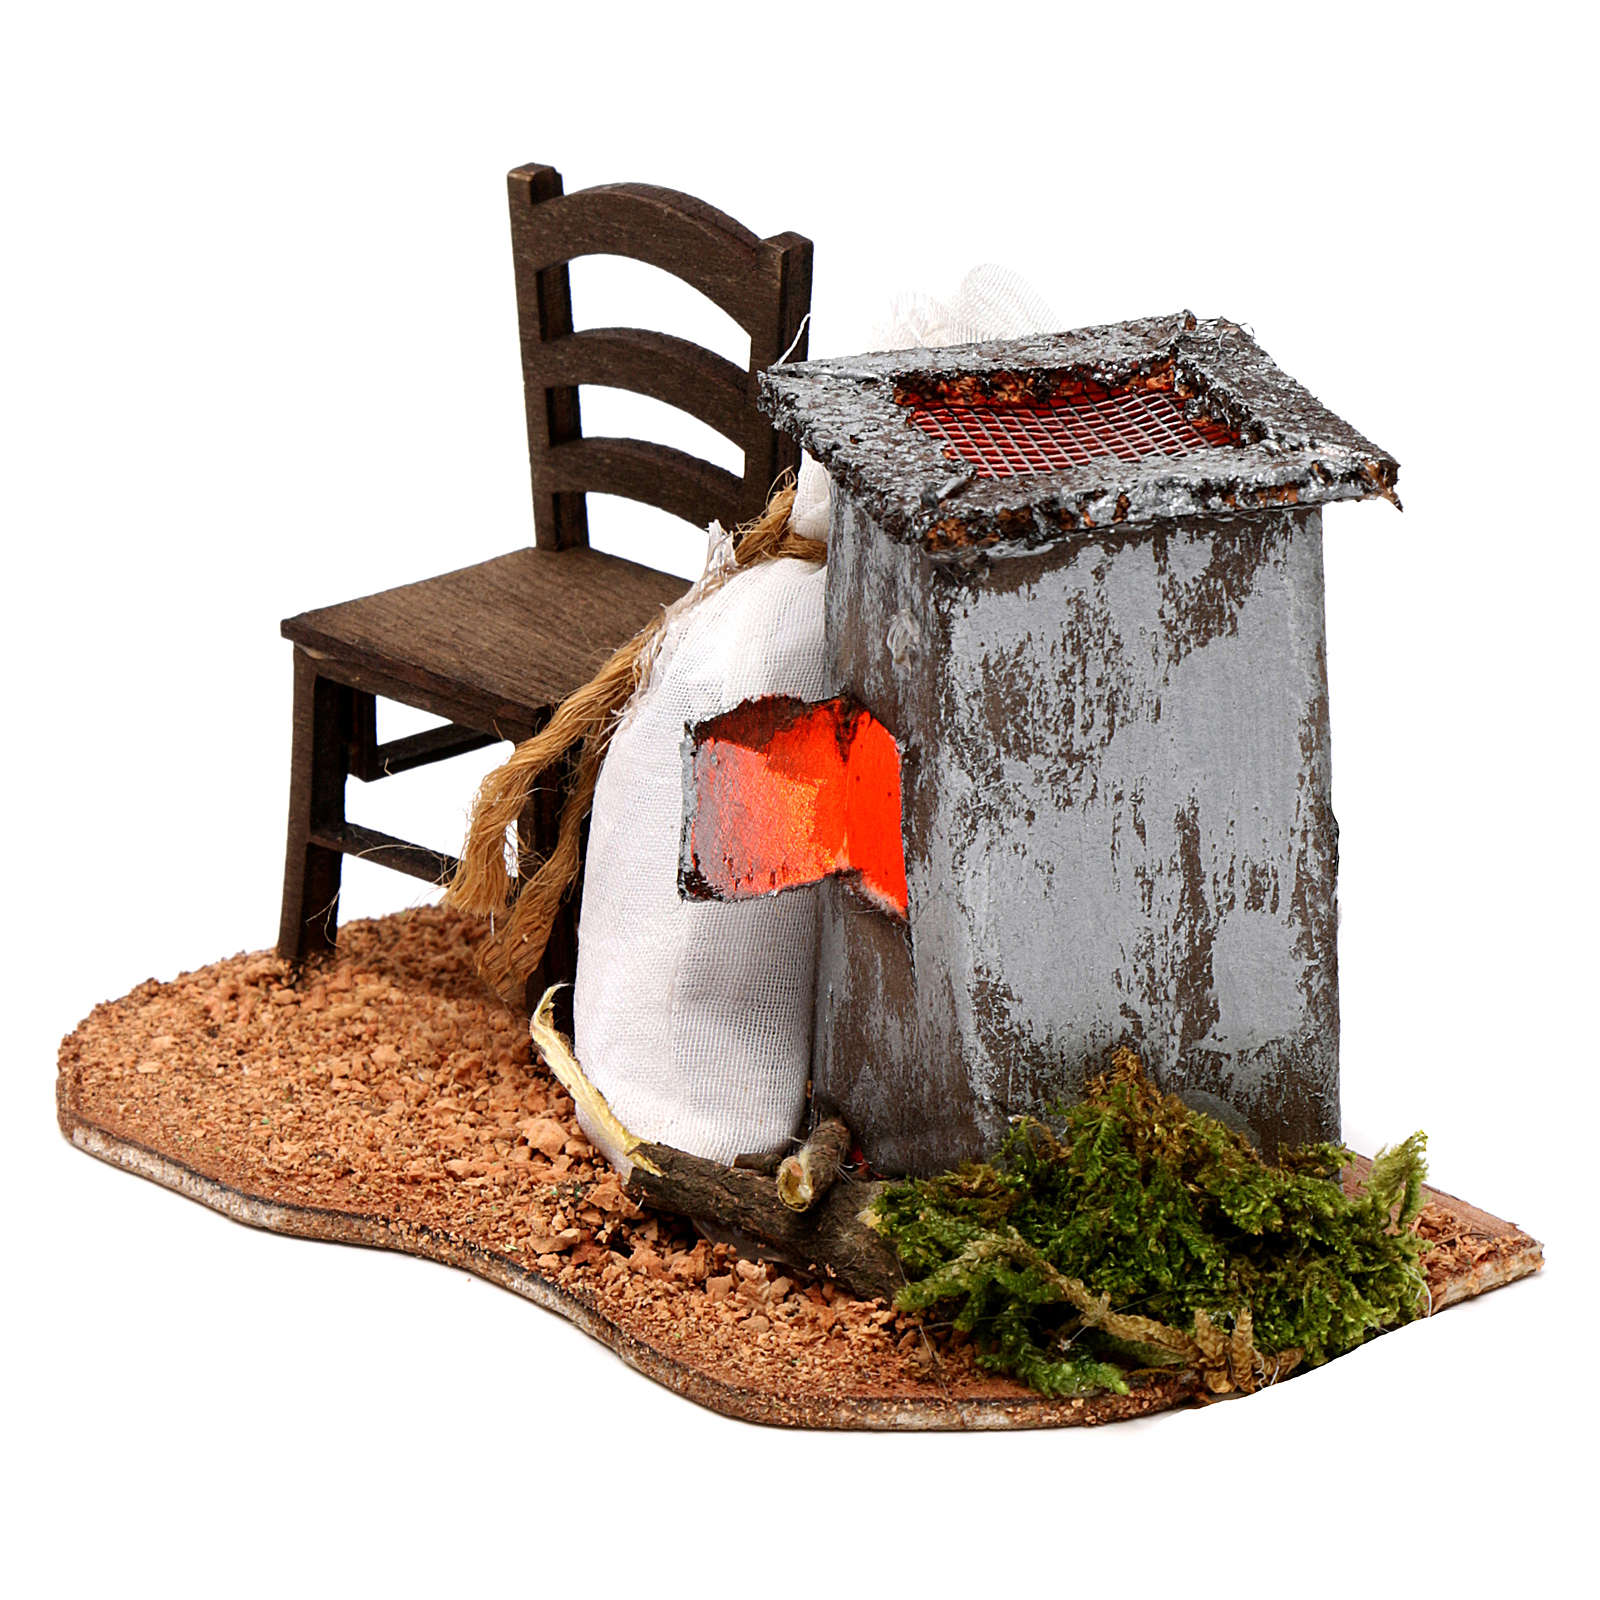 Illuminated nativity scene with roasted chestnuts and chair 6x12x7cm 4